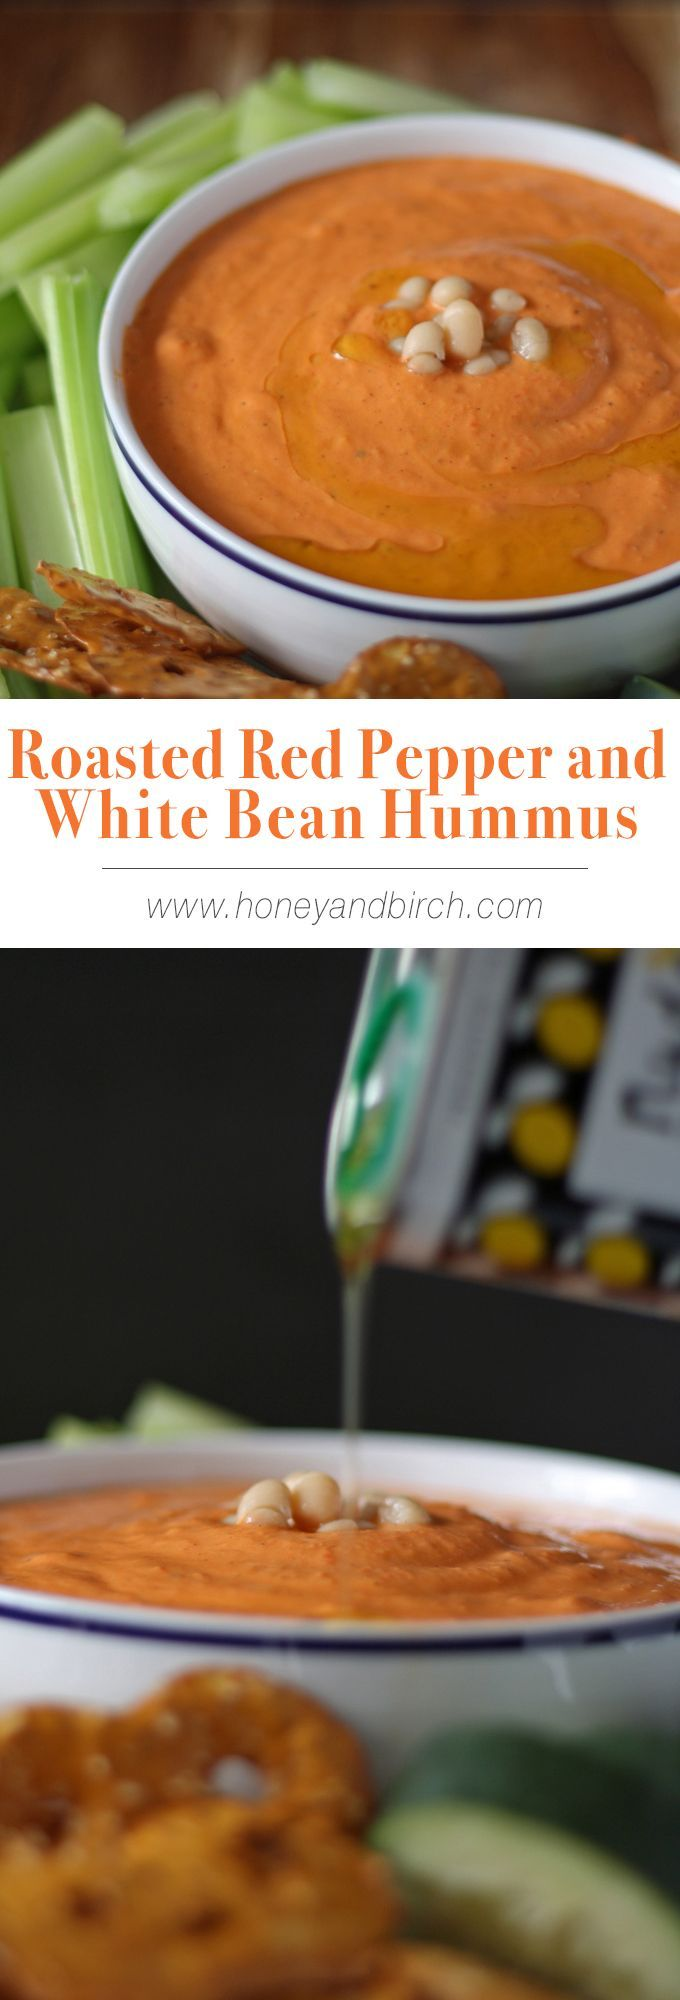 ... on Pinterest | White bean dip, Healthy hummus recipe and White beans